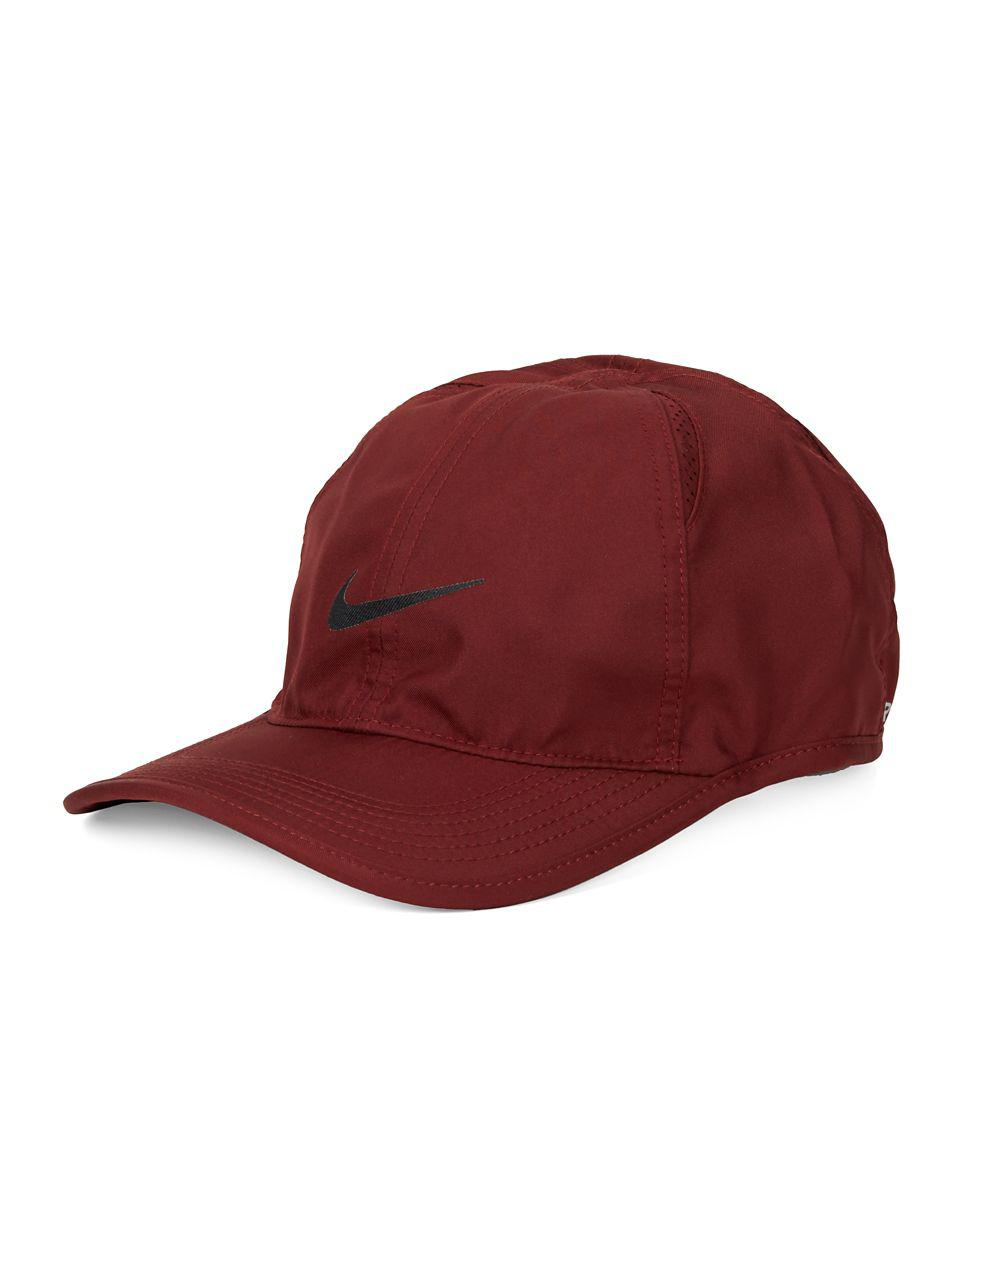 fbf2ccb6041 Nike Arobill Adjustable Cap in Red for Men - Lyst